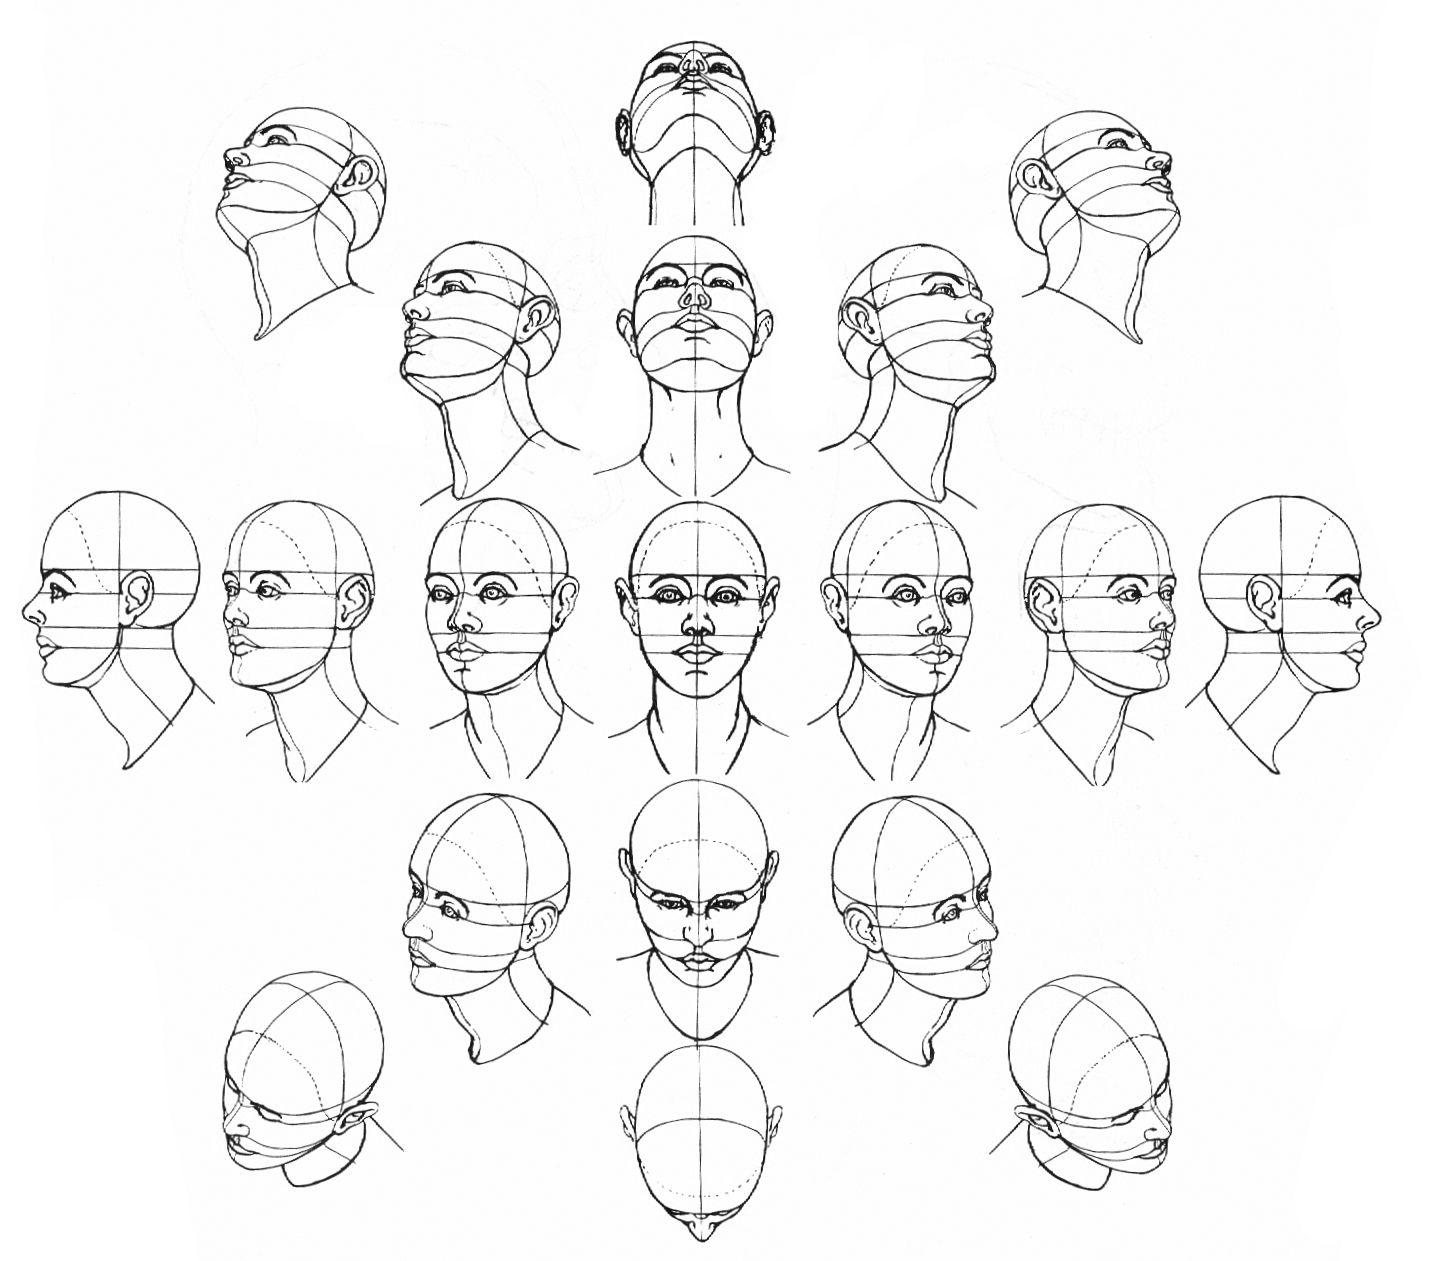 Jeff Searle Drawing The Head From Different Angles Drawings Drawing The Human Head Art Drawings